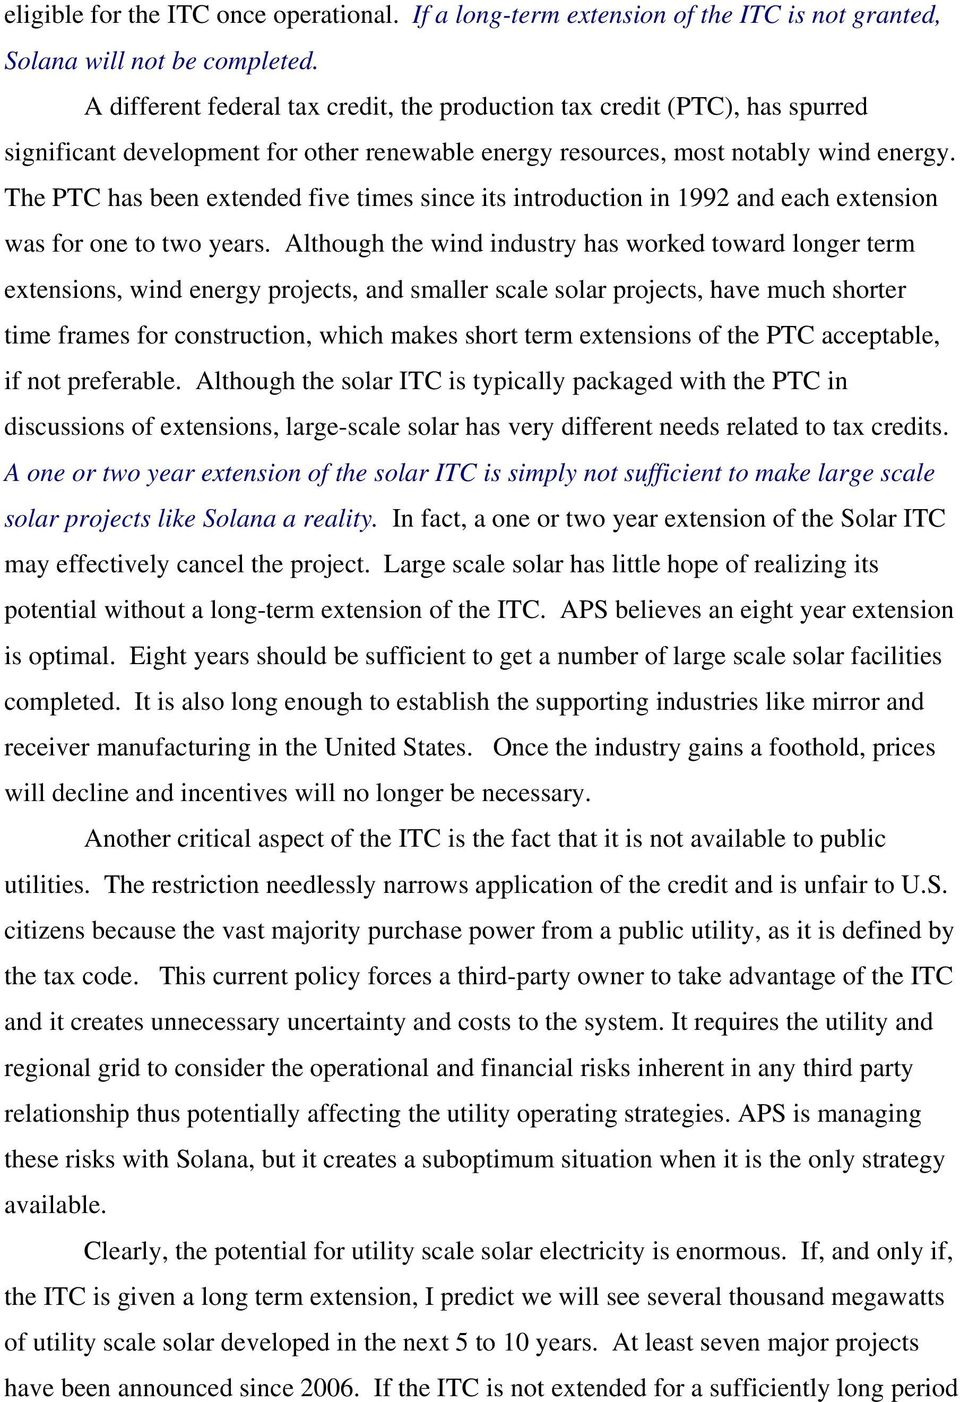 The PTC has been extended five times since its introduction in 1992 and each extension was for one to two years.